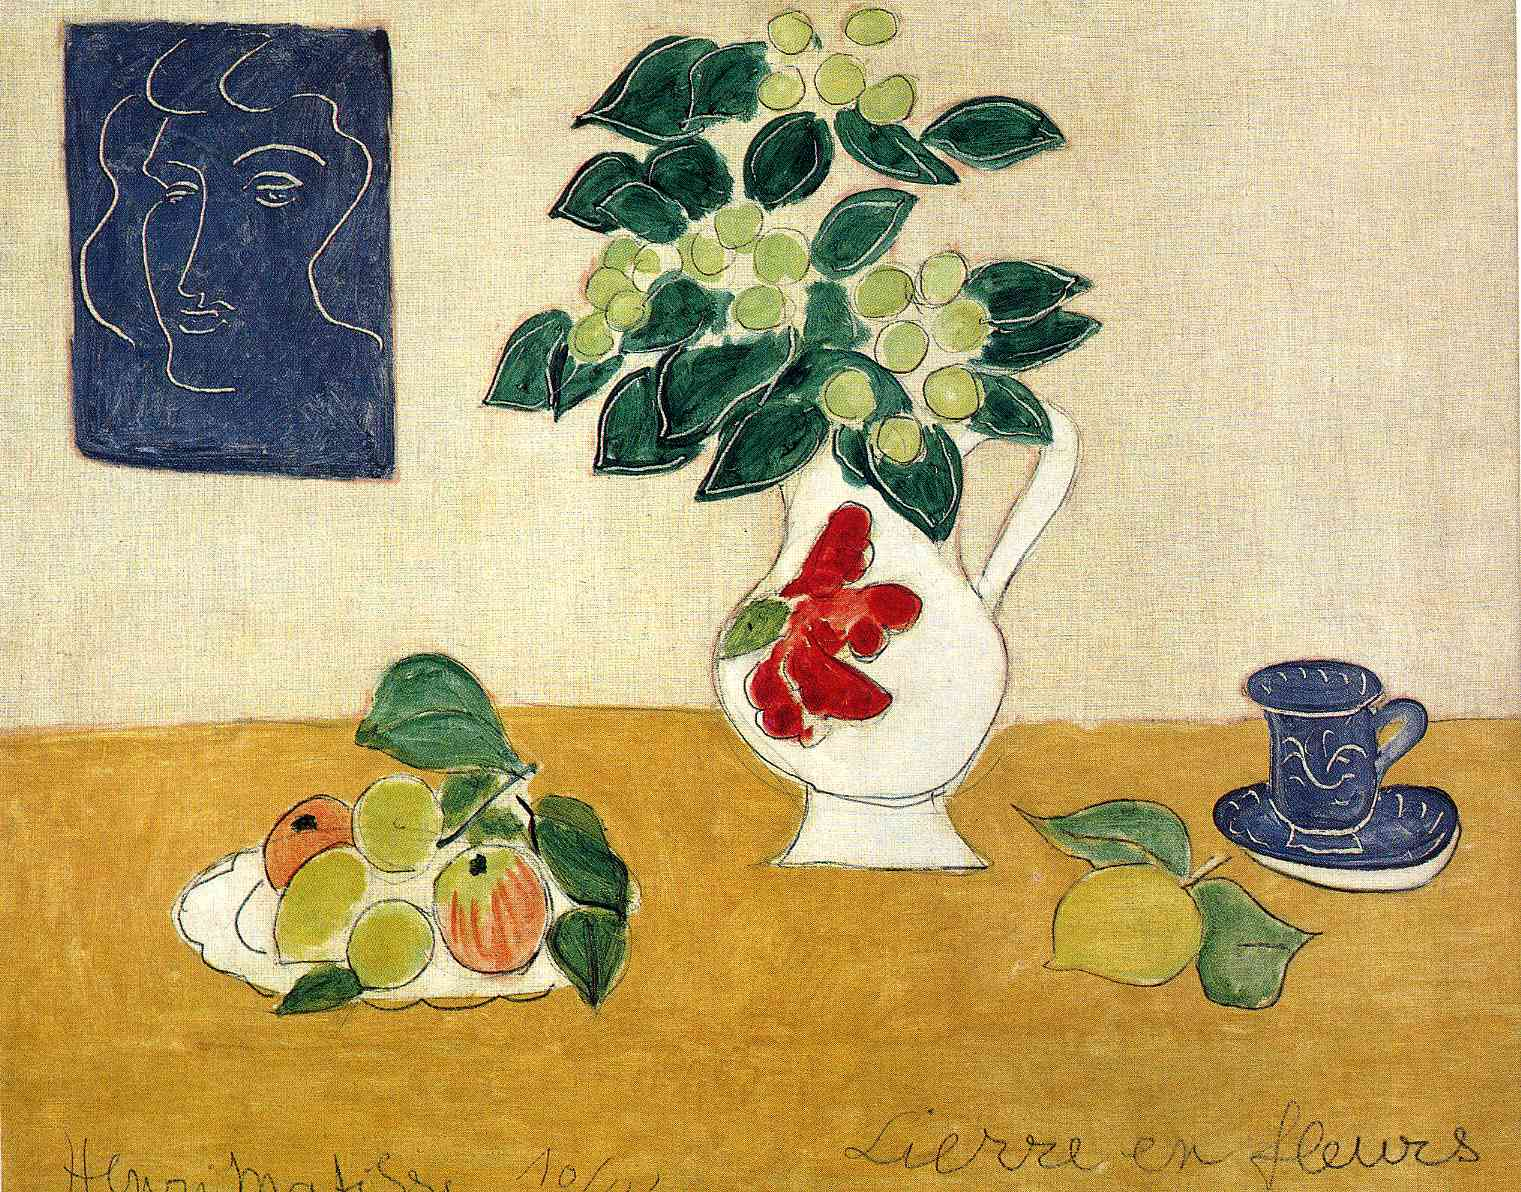 Henri Matisse - Ivy in Flower 1941